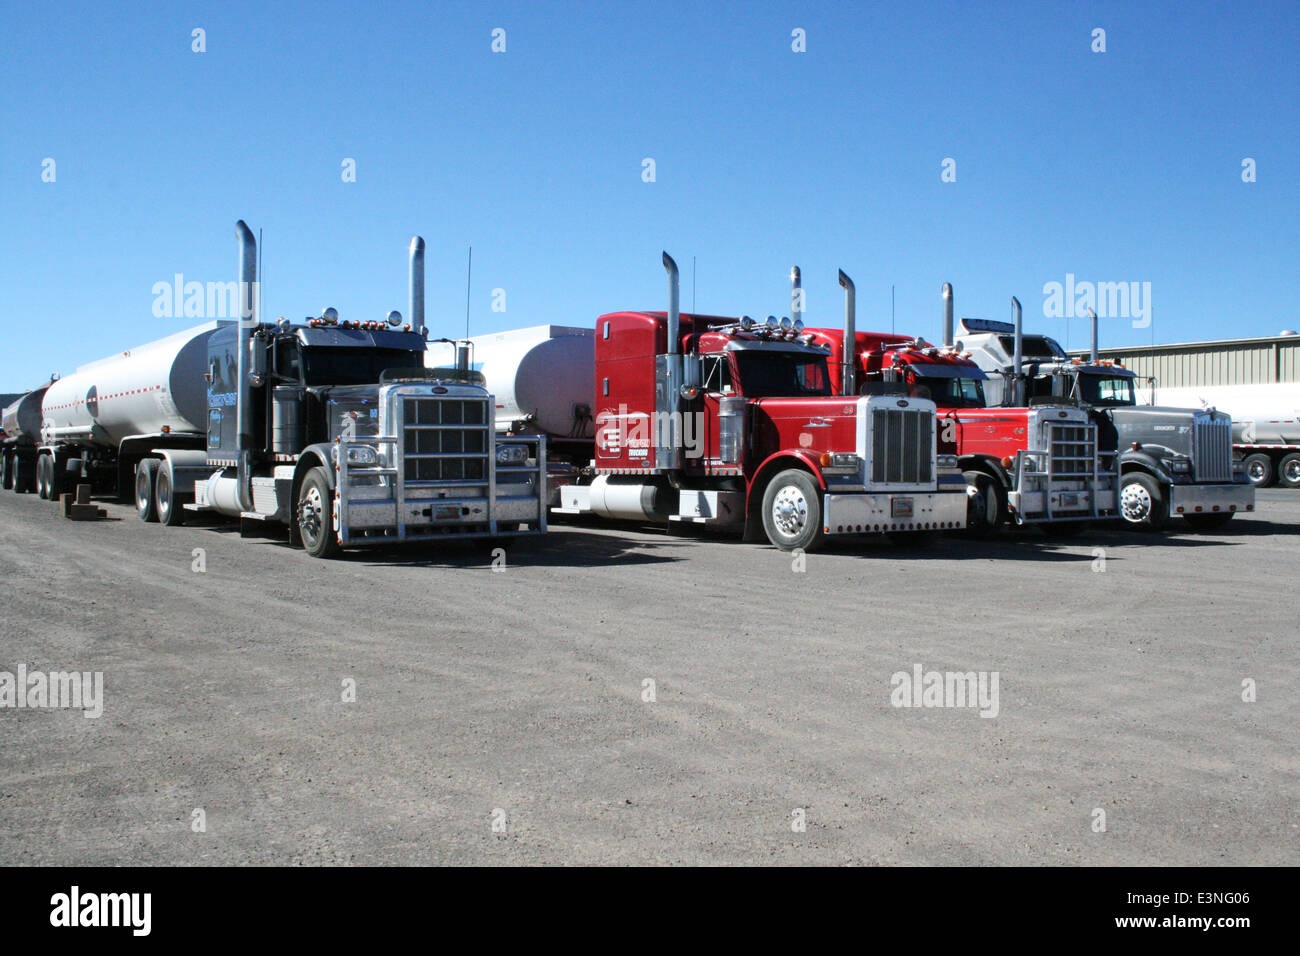 American Trucks - Stock Image